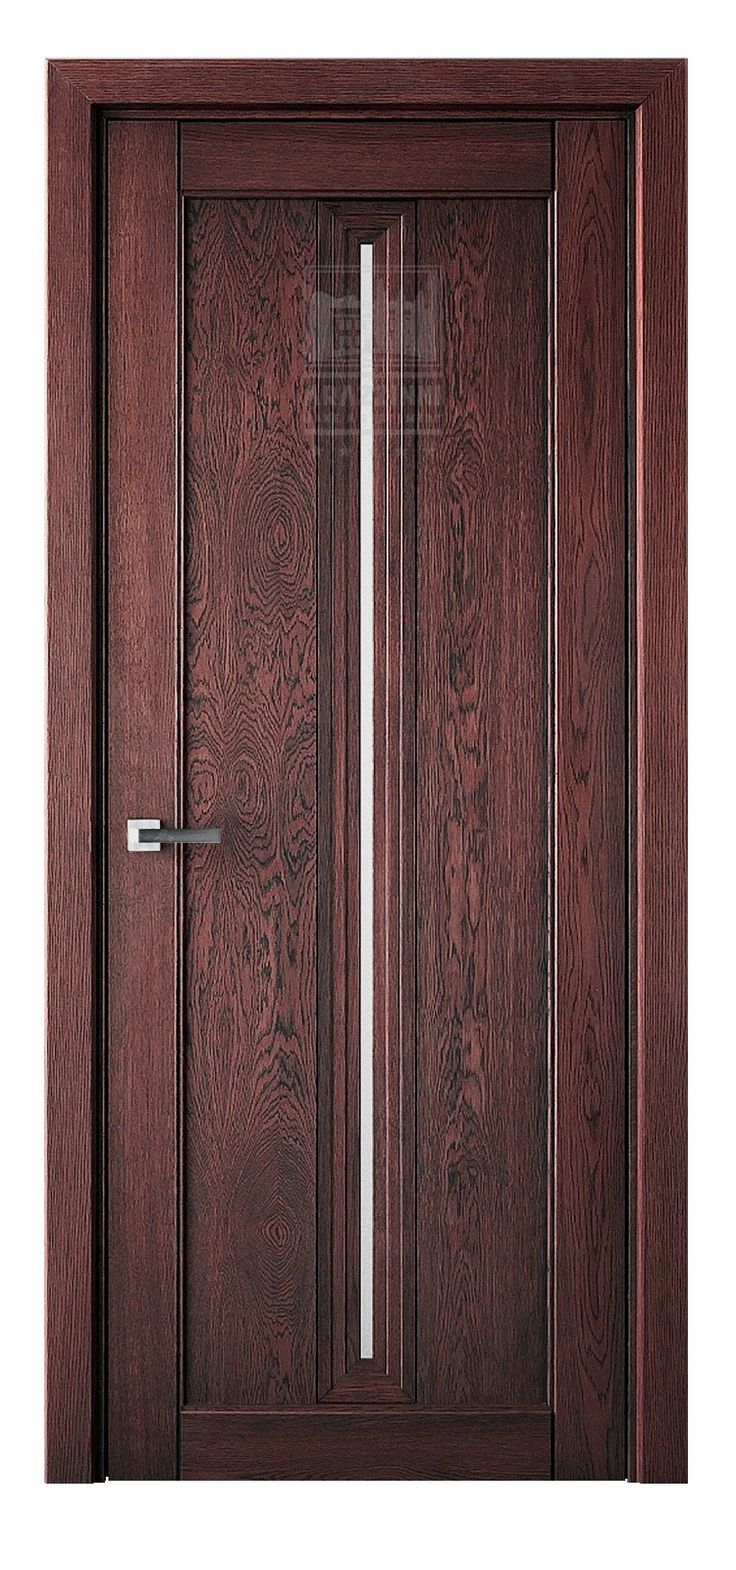 Red Oak Interior Doors : Images about red oak massello di rovere on